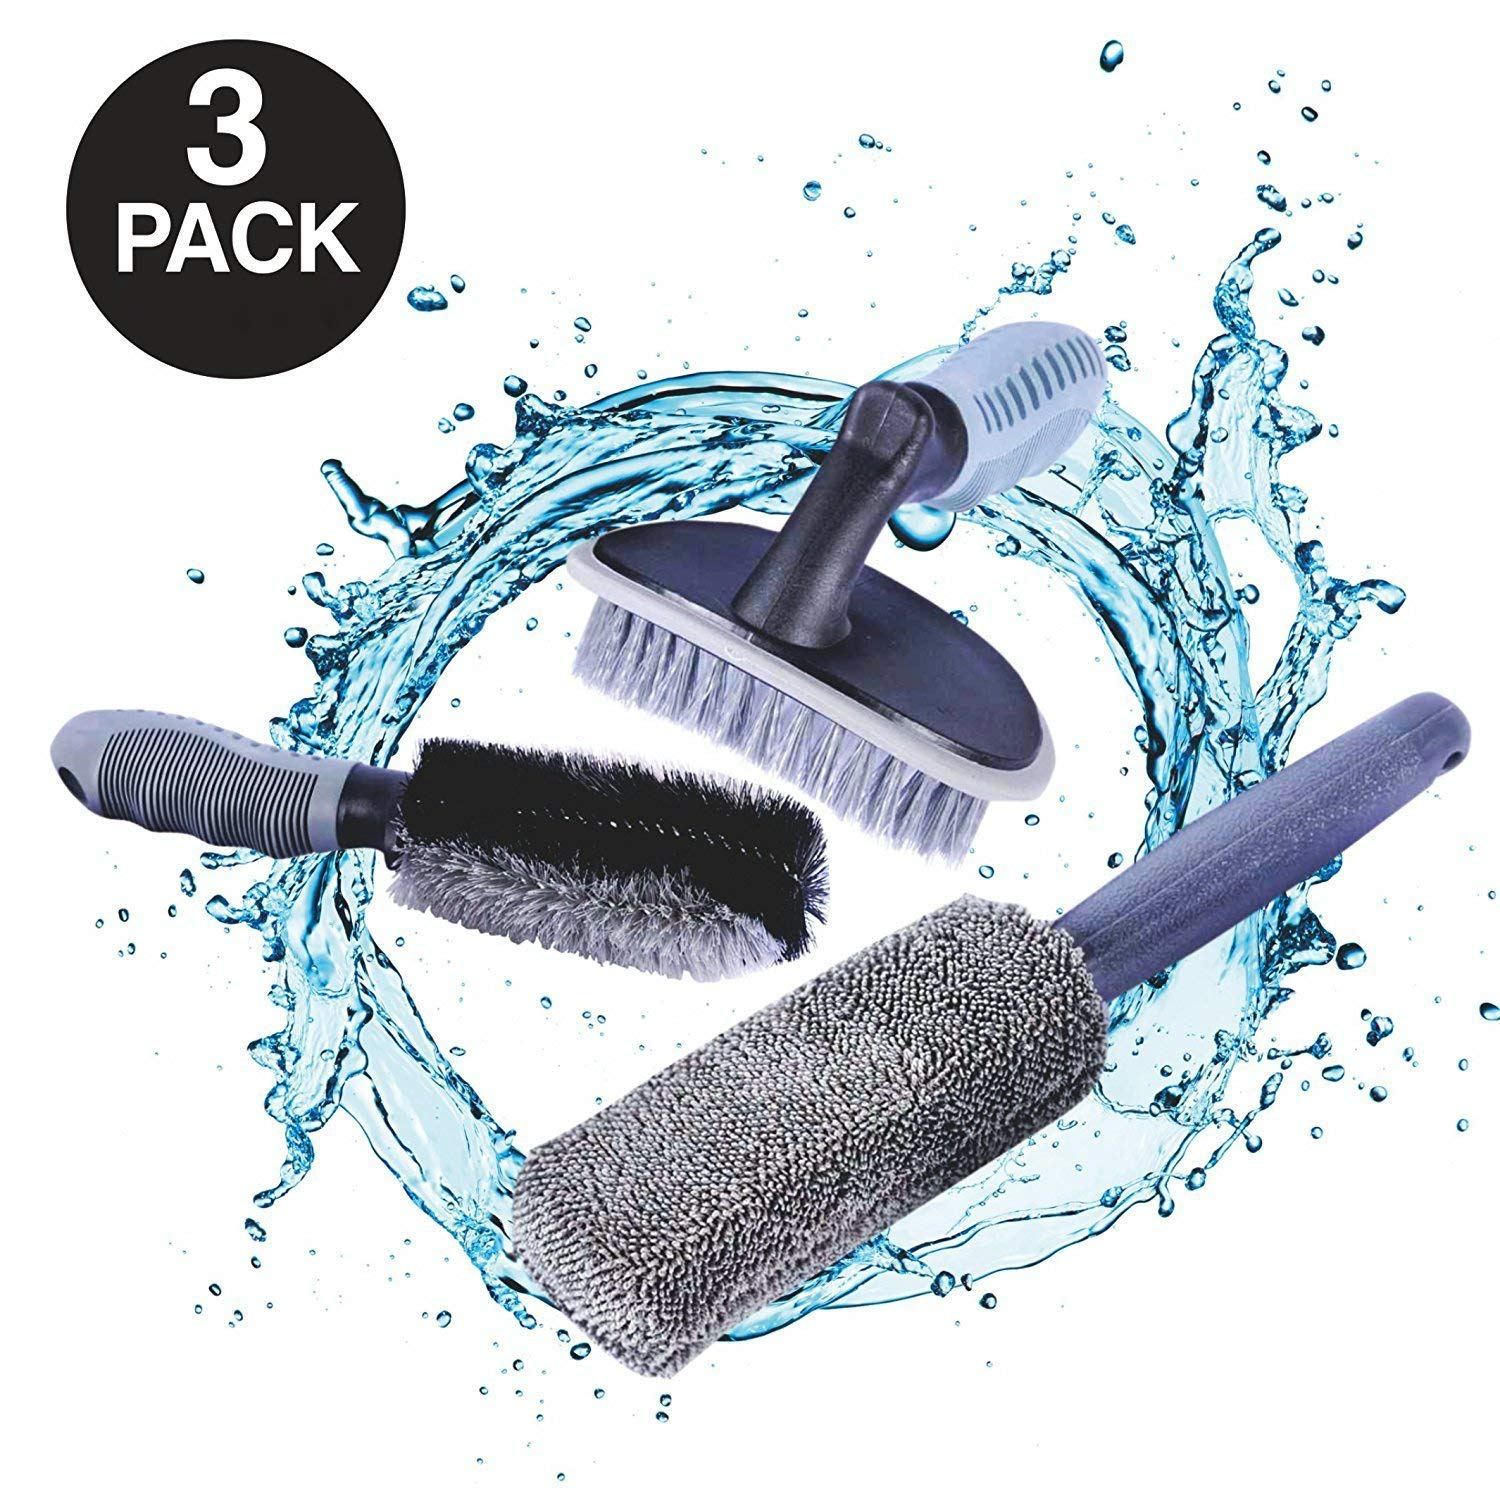 AutoEC Car Wheel Cleaning Brush Kit 2 Tire Rim Scrub Brush Soft Alloy Brush Cleaner 1 Premium Metal Free Wheel Rim Brush Use for Auto Motorcycle Bike Wheel Cleaning